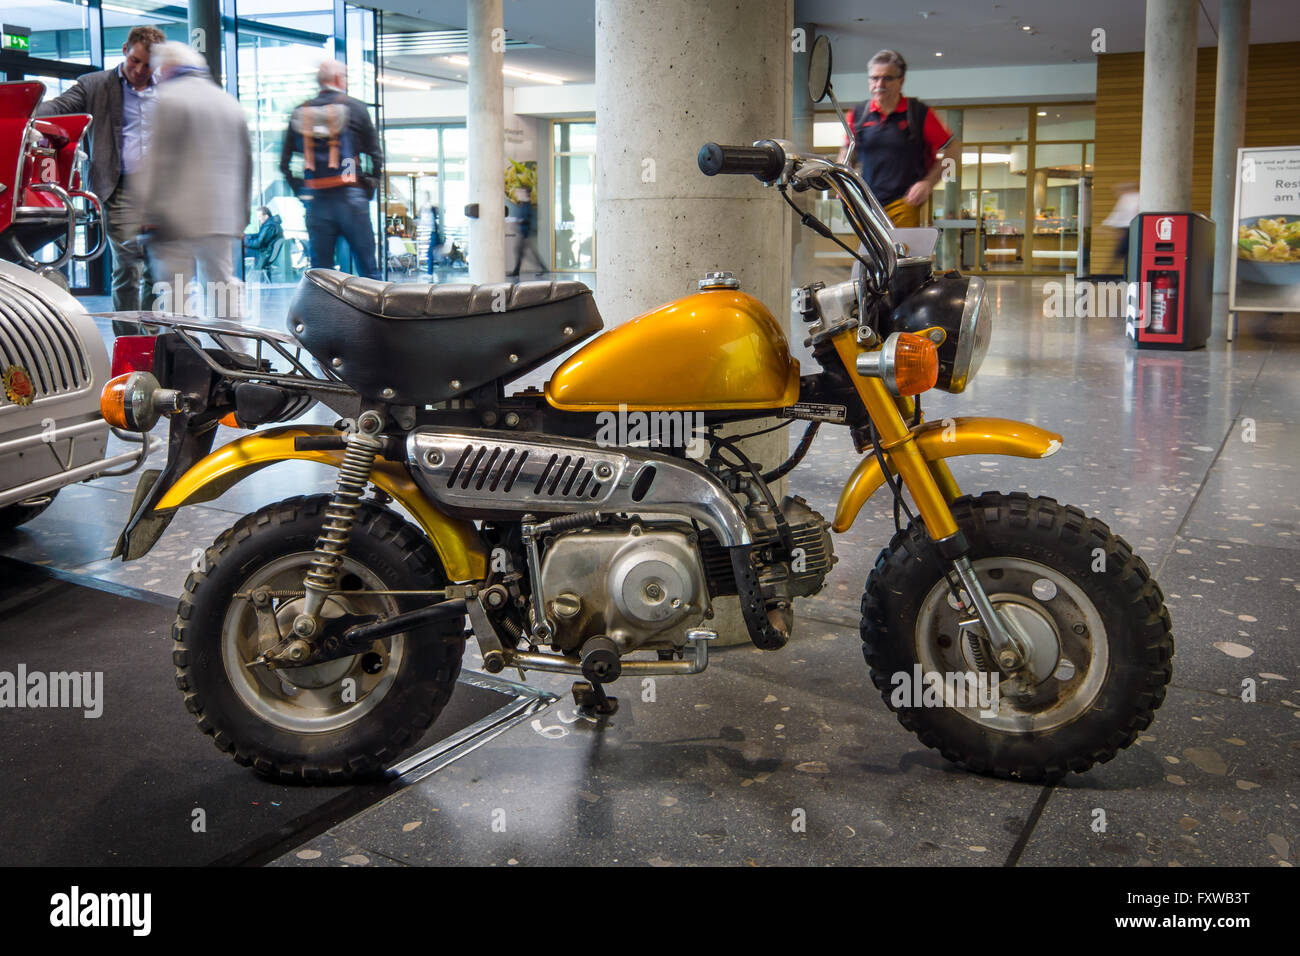 Stuttgart Germany March 17 2016 Mini Bike Honda Z50j 1973